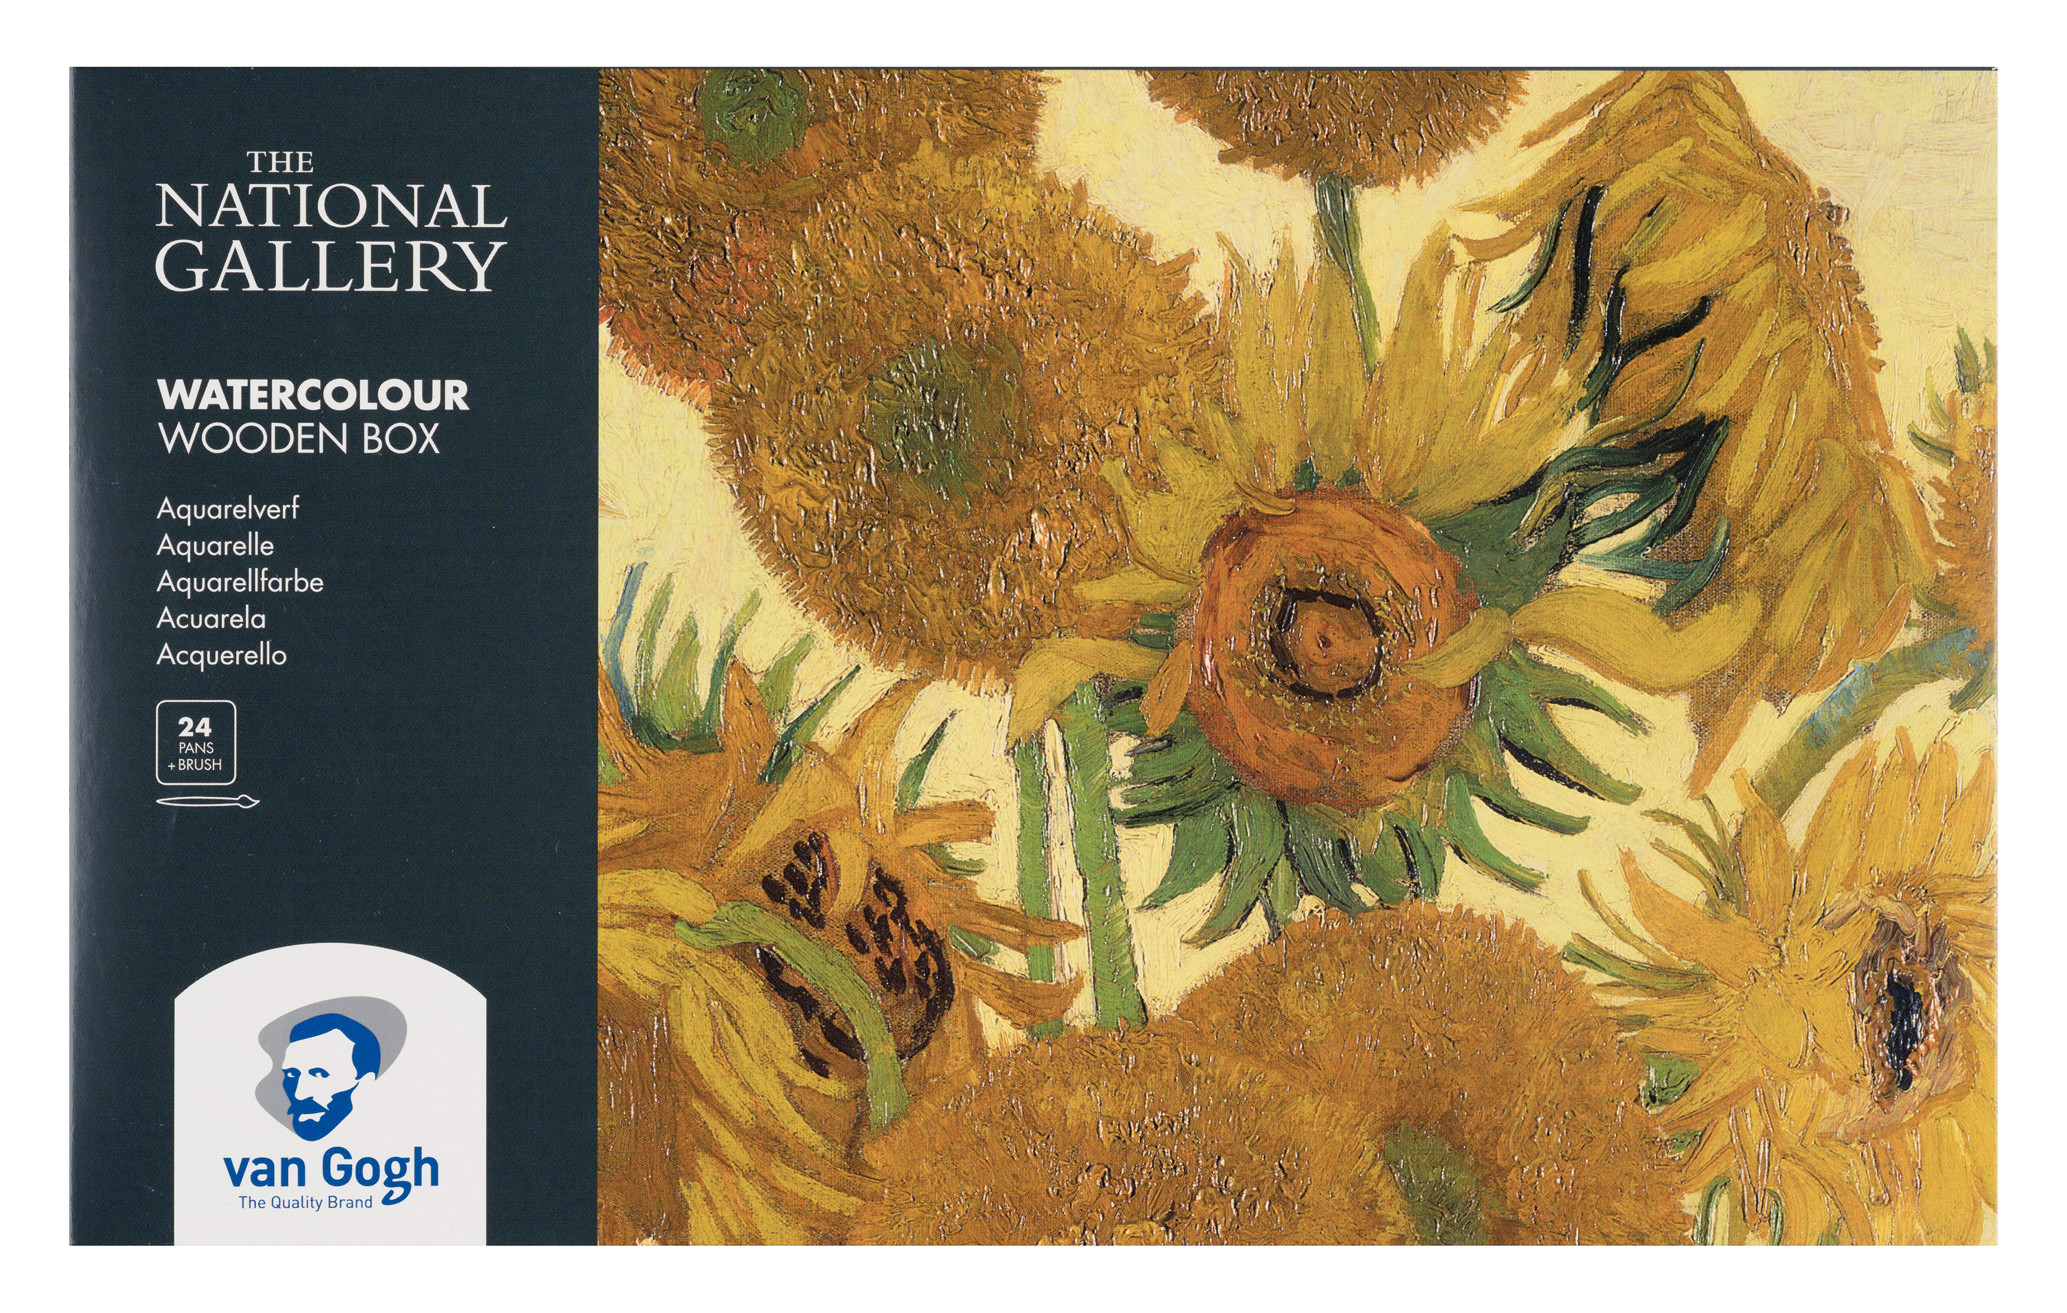 Van Gogh The National Gallery Water Colour Wooden Box Set with 24 Colours in Half Pans + 3 Accessories